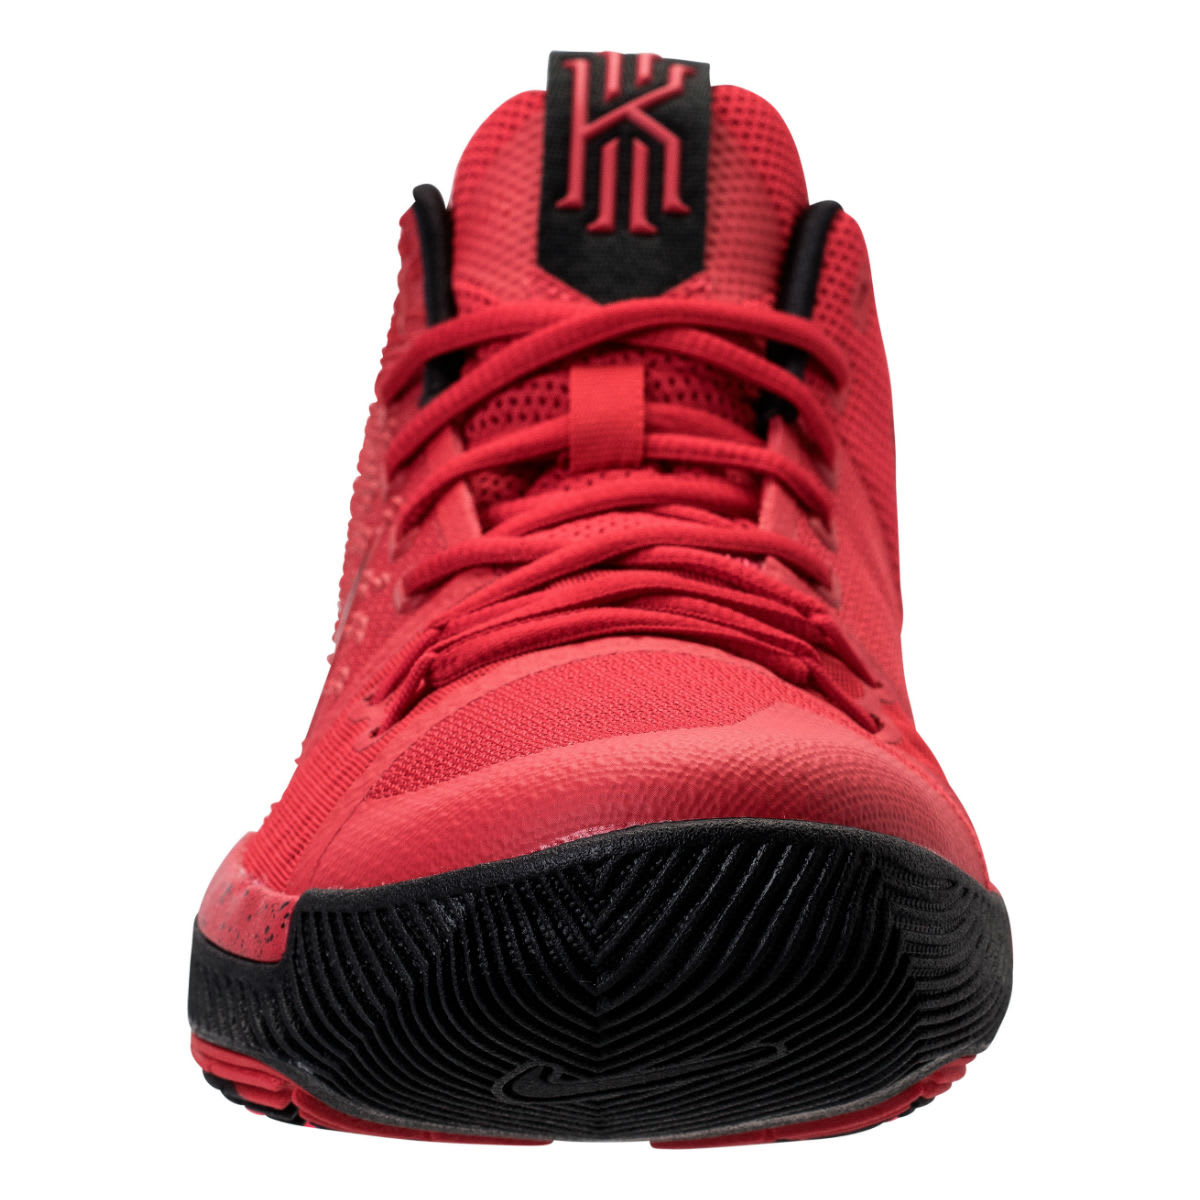 ... top quality top quality bb071 77de6 nike kyrie 3 three point contest  university red release date 1b4a99c1ca